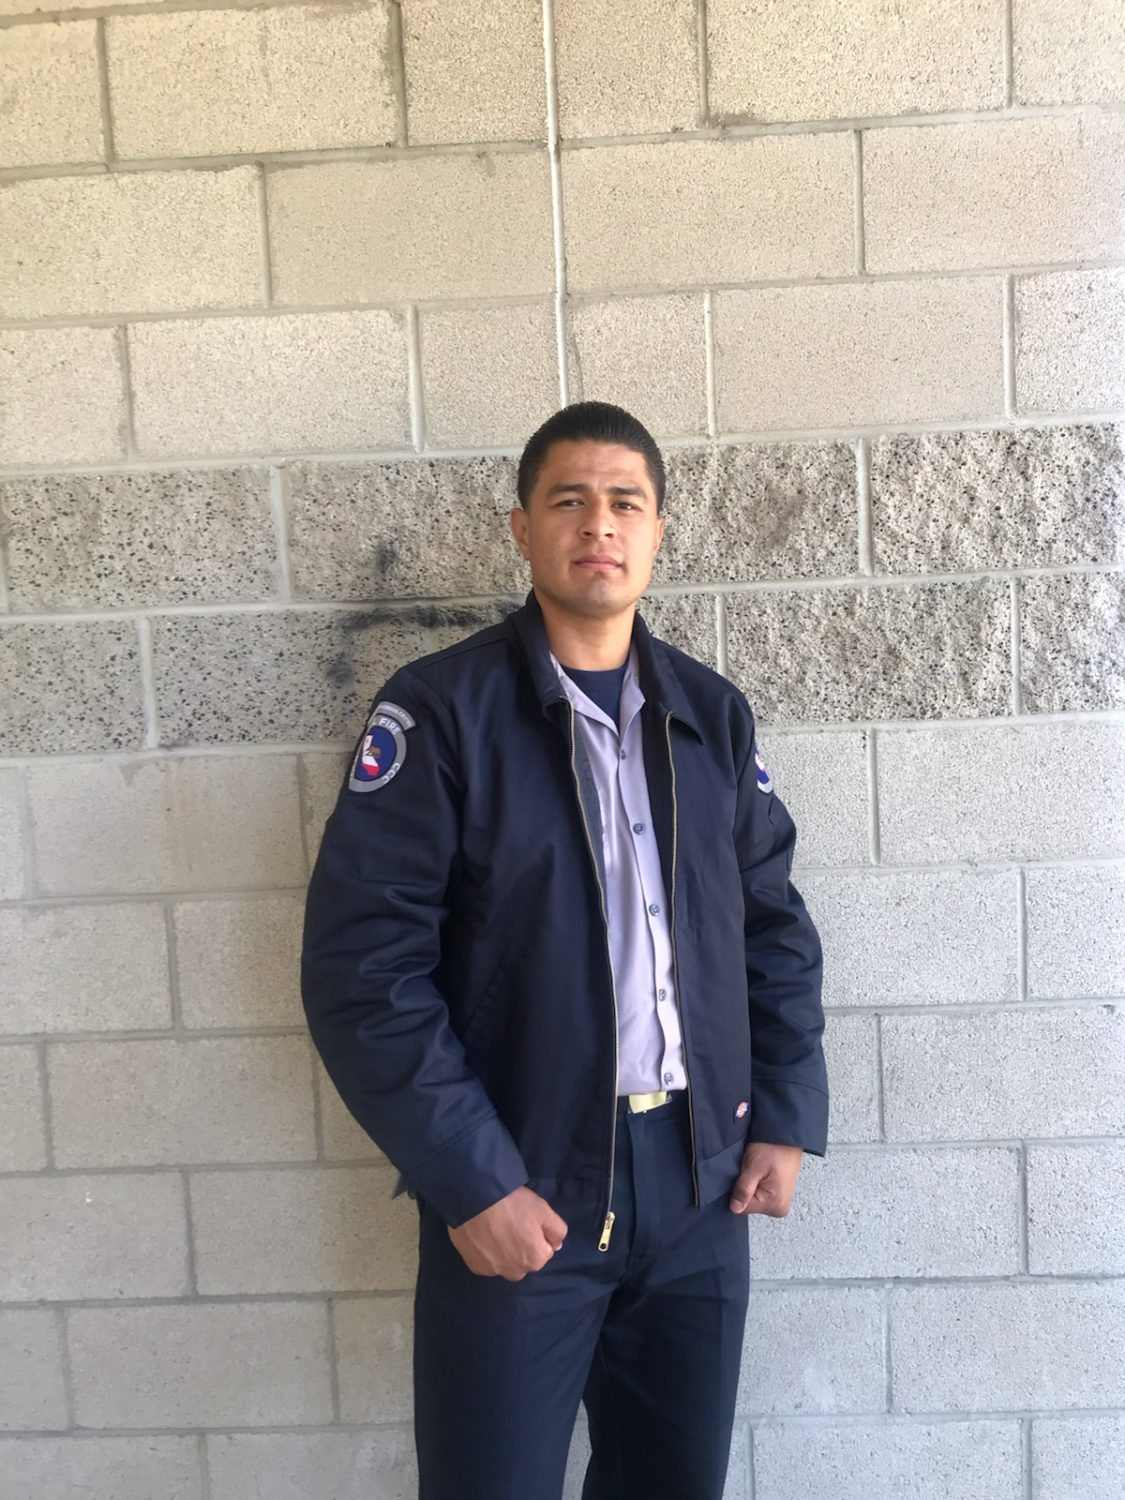 Edward-Lopez-1, As fire season bears down on thirsty California, incarcerated crews prepare to battle flames, Local News & Views